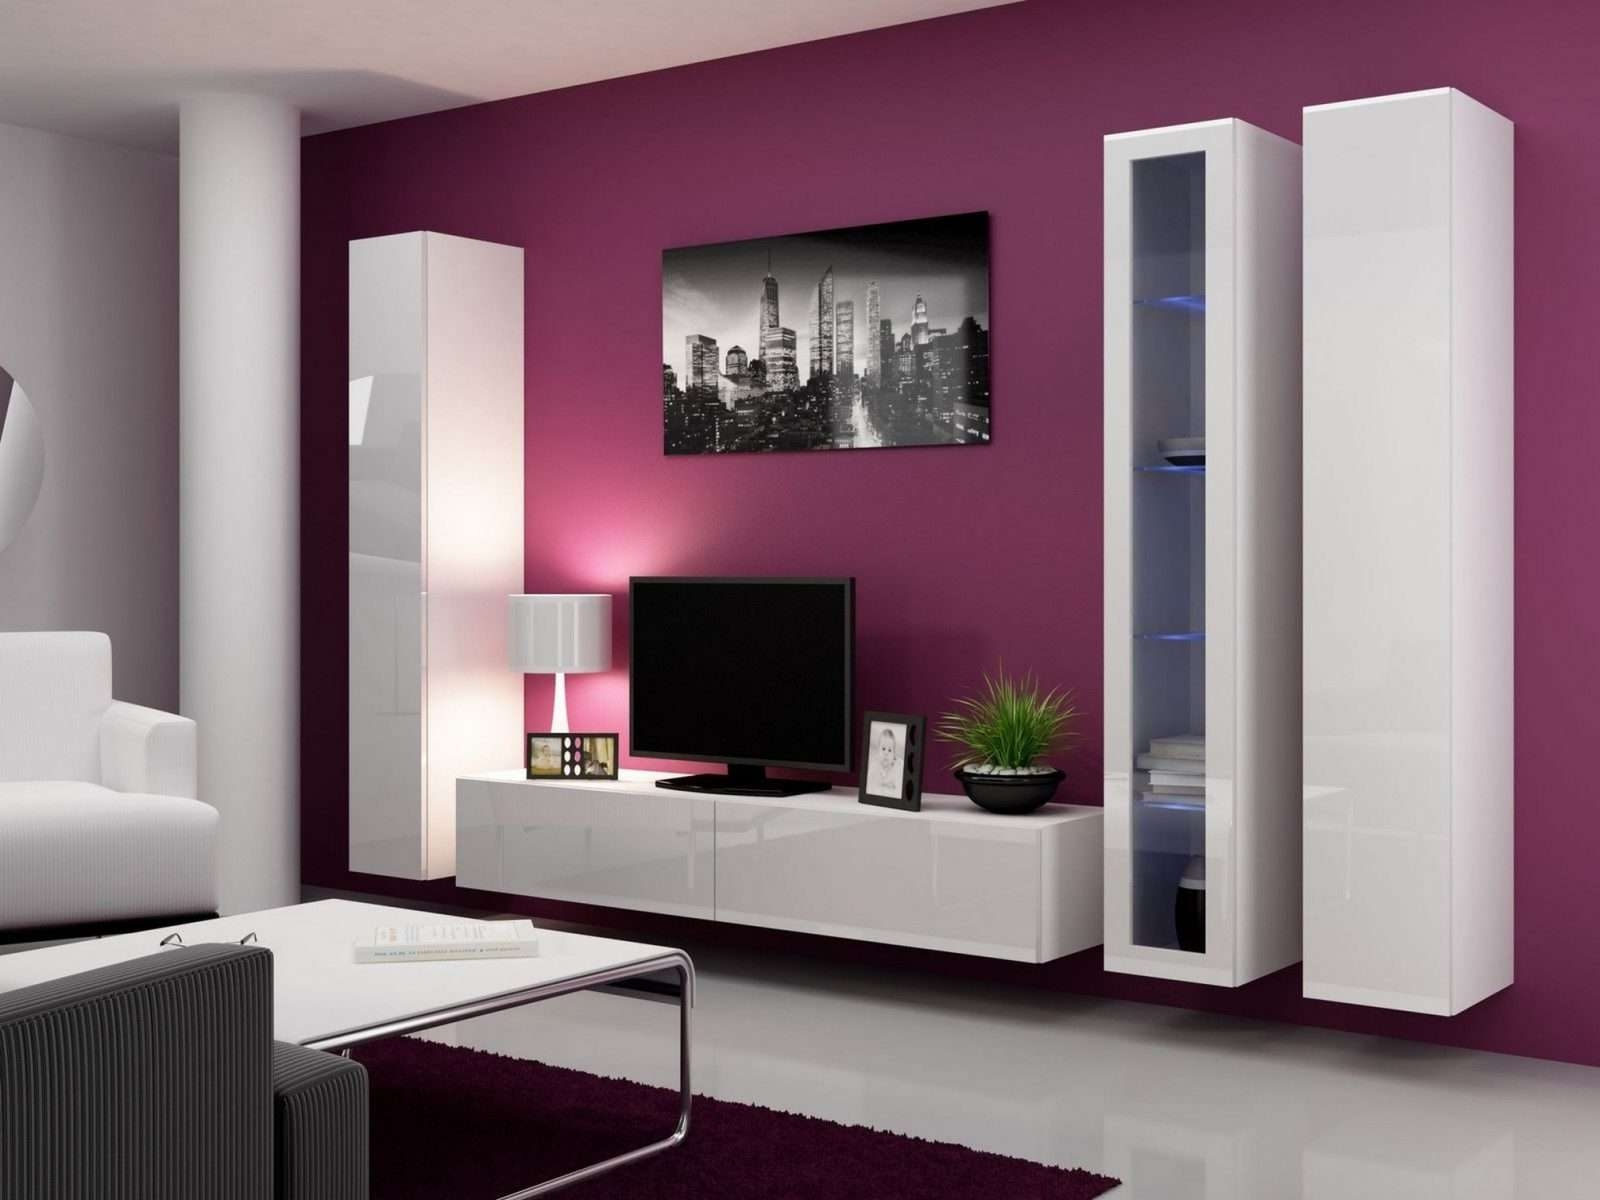 Wall Mounted Media Cabinets Furniture Interior Contemporary White Inside White Wall Mounted Tv Stands (View 12 of 15)